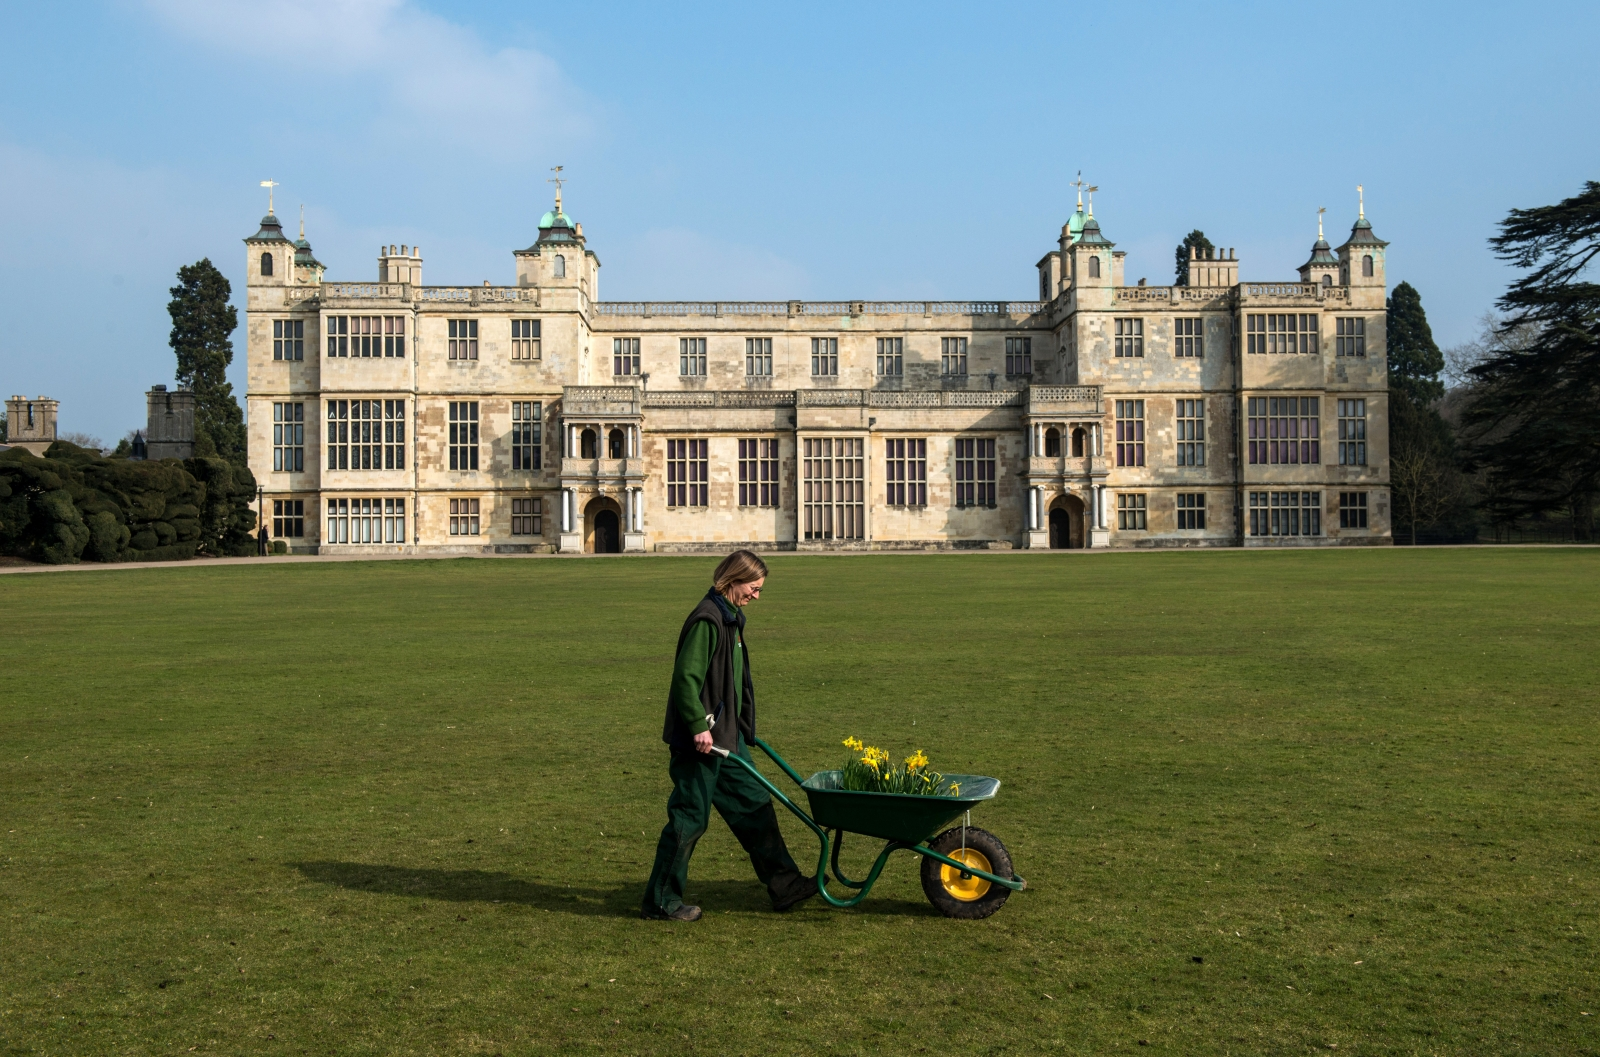 Audley End House English heritage mansion